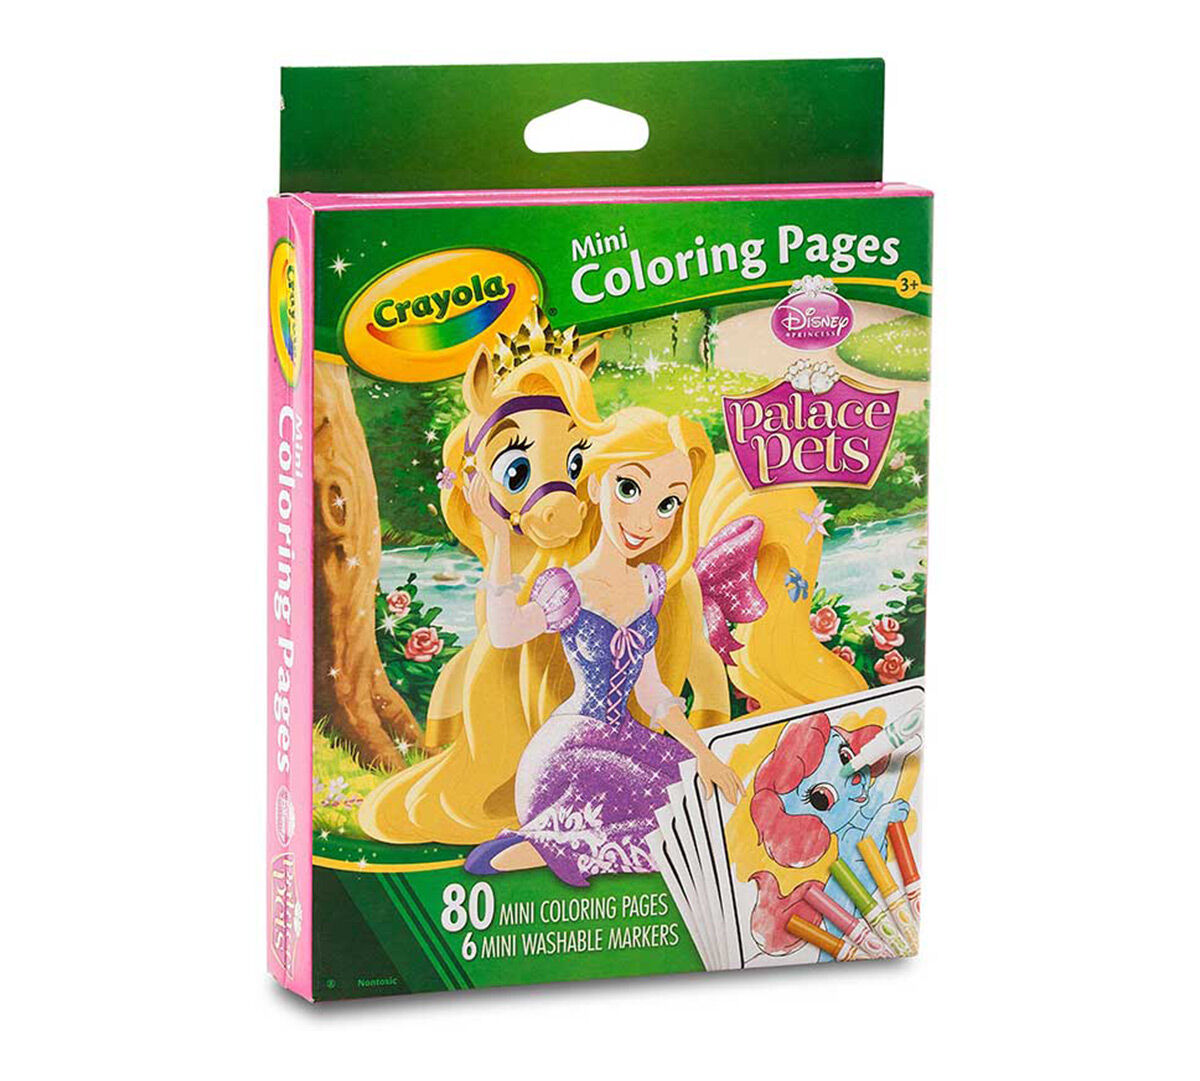 Crayola Coloring Pages Princess : Mini coloring pages disney princess palace pets crayola